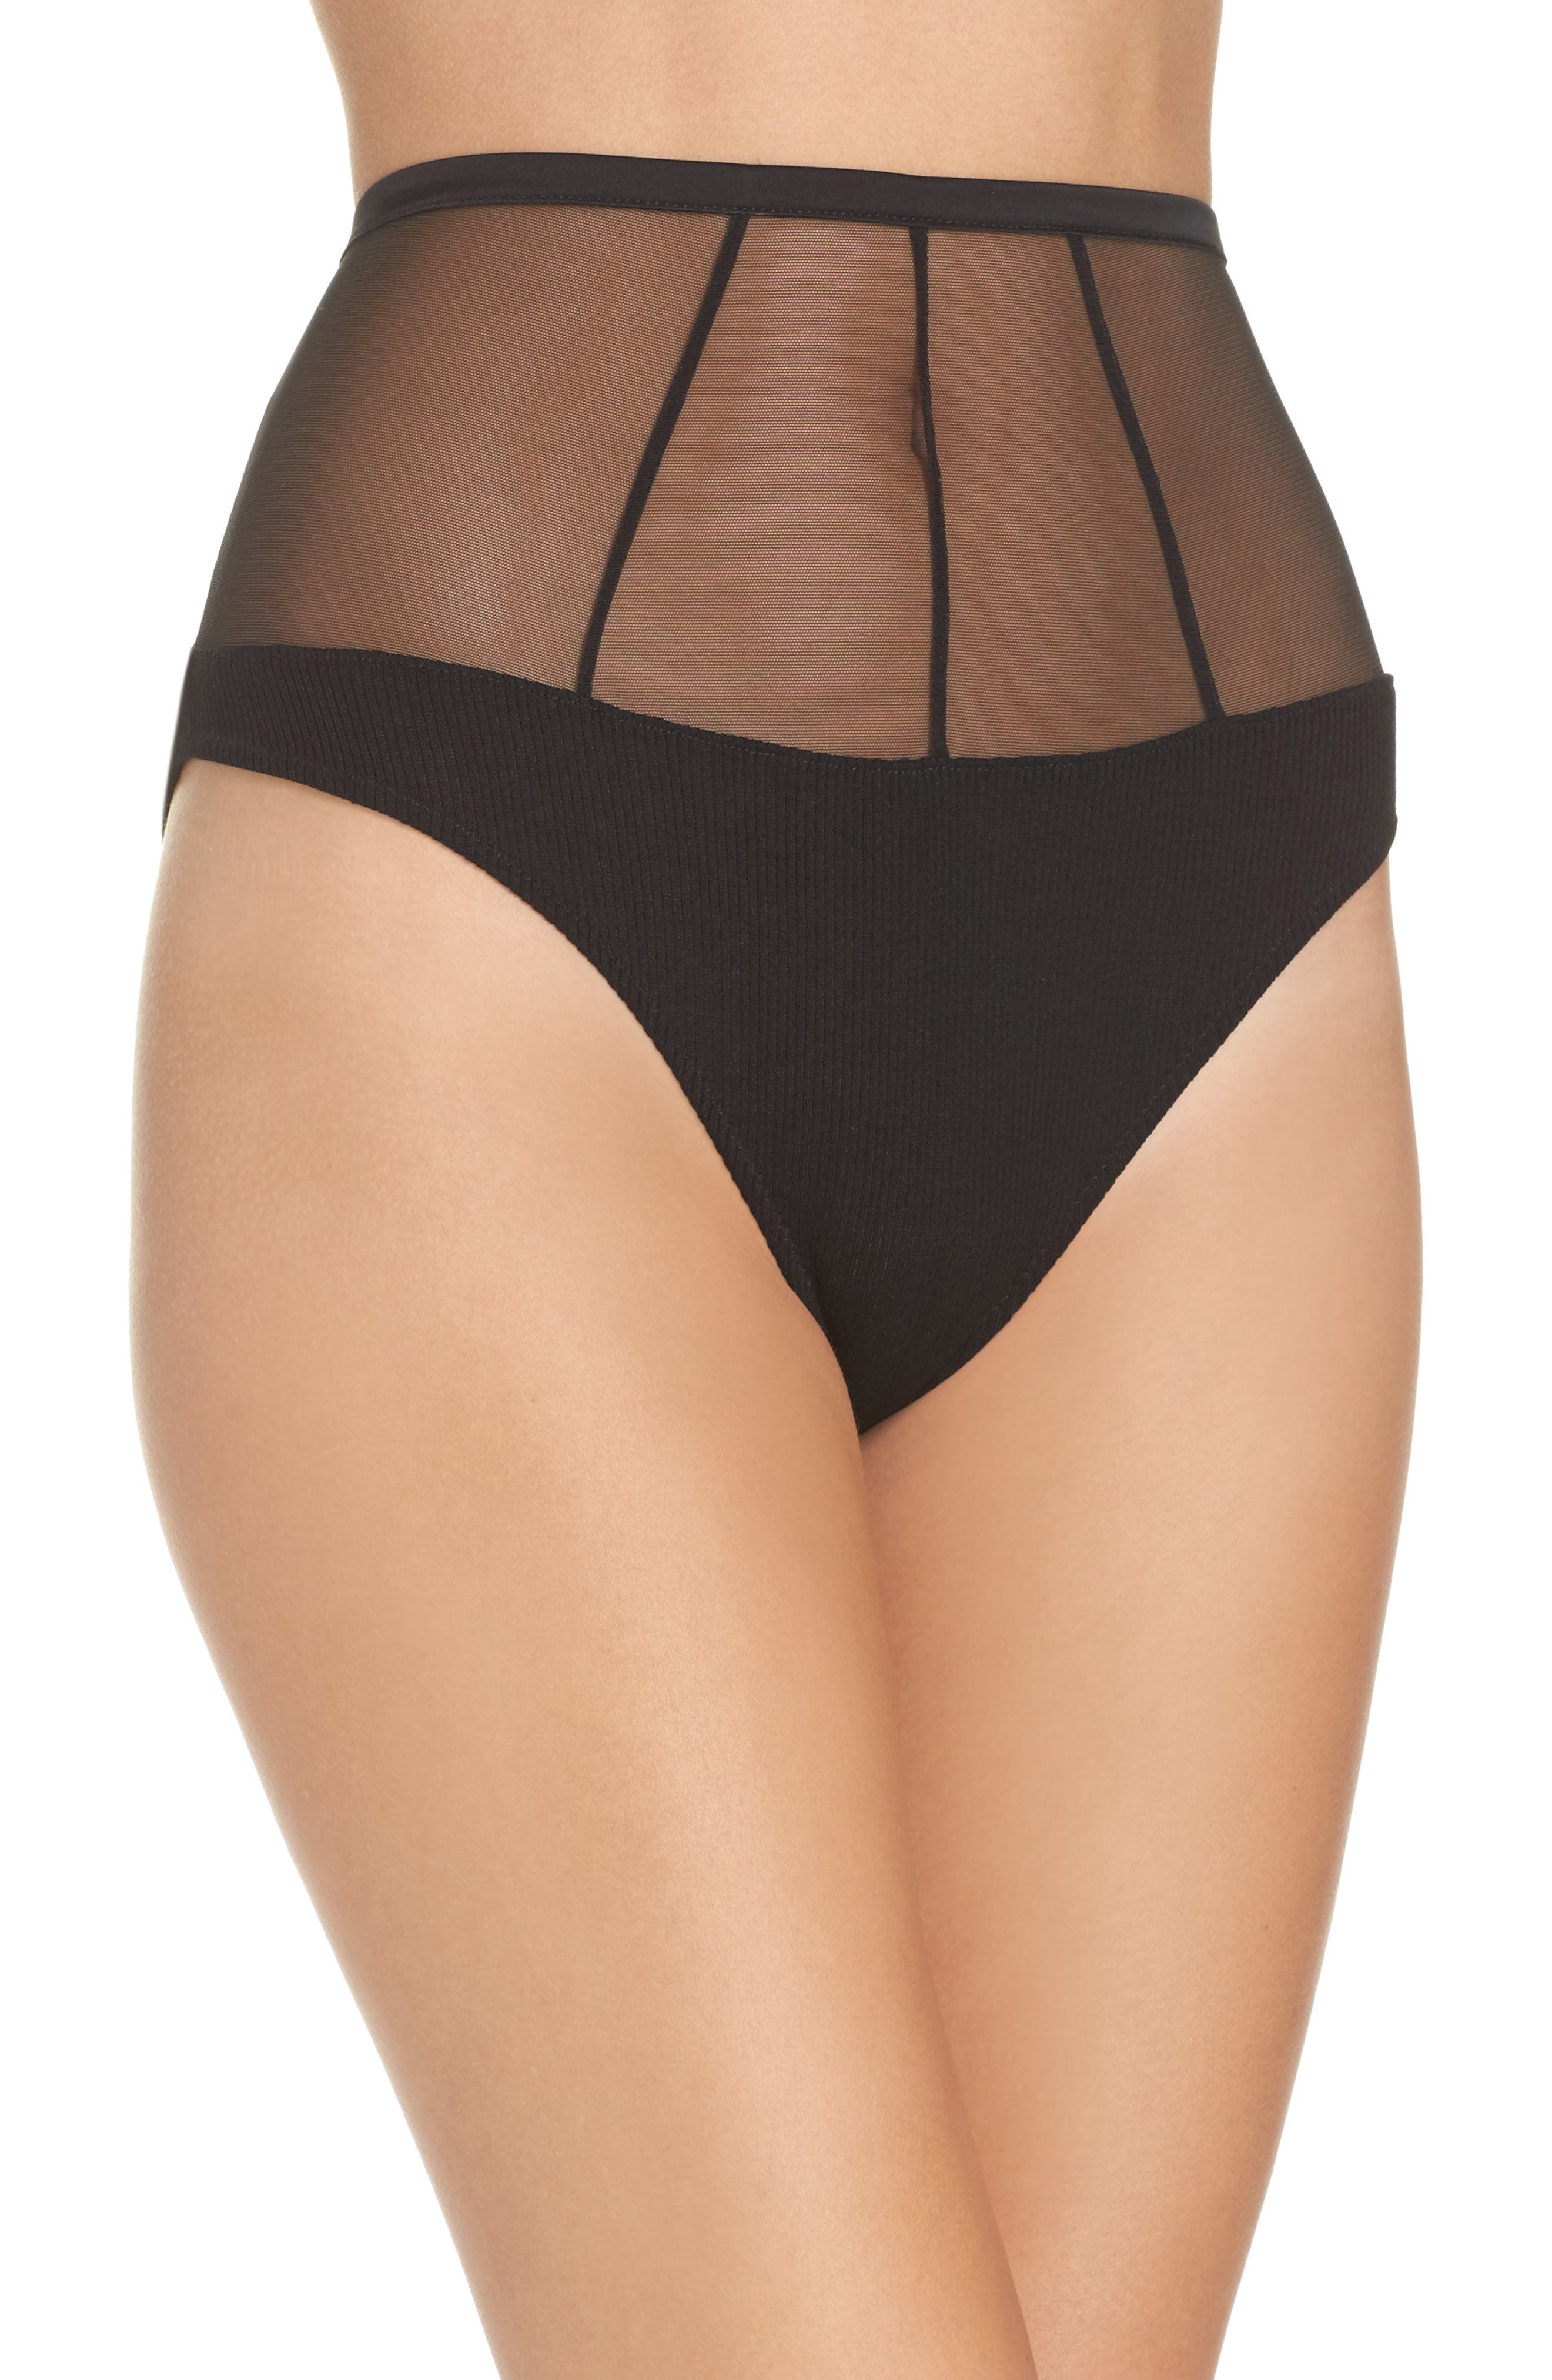 High Waist Mesh Panties,                             Main thumbnail 1, color,                             002